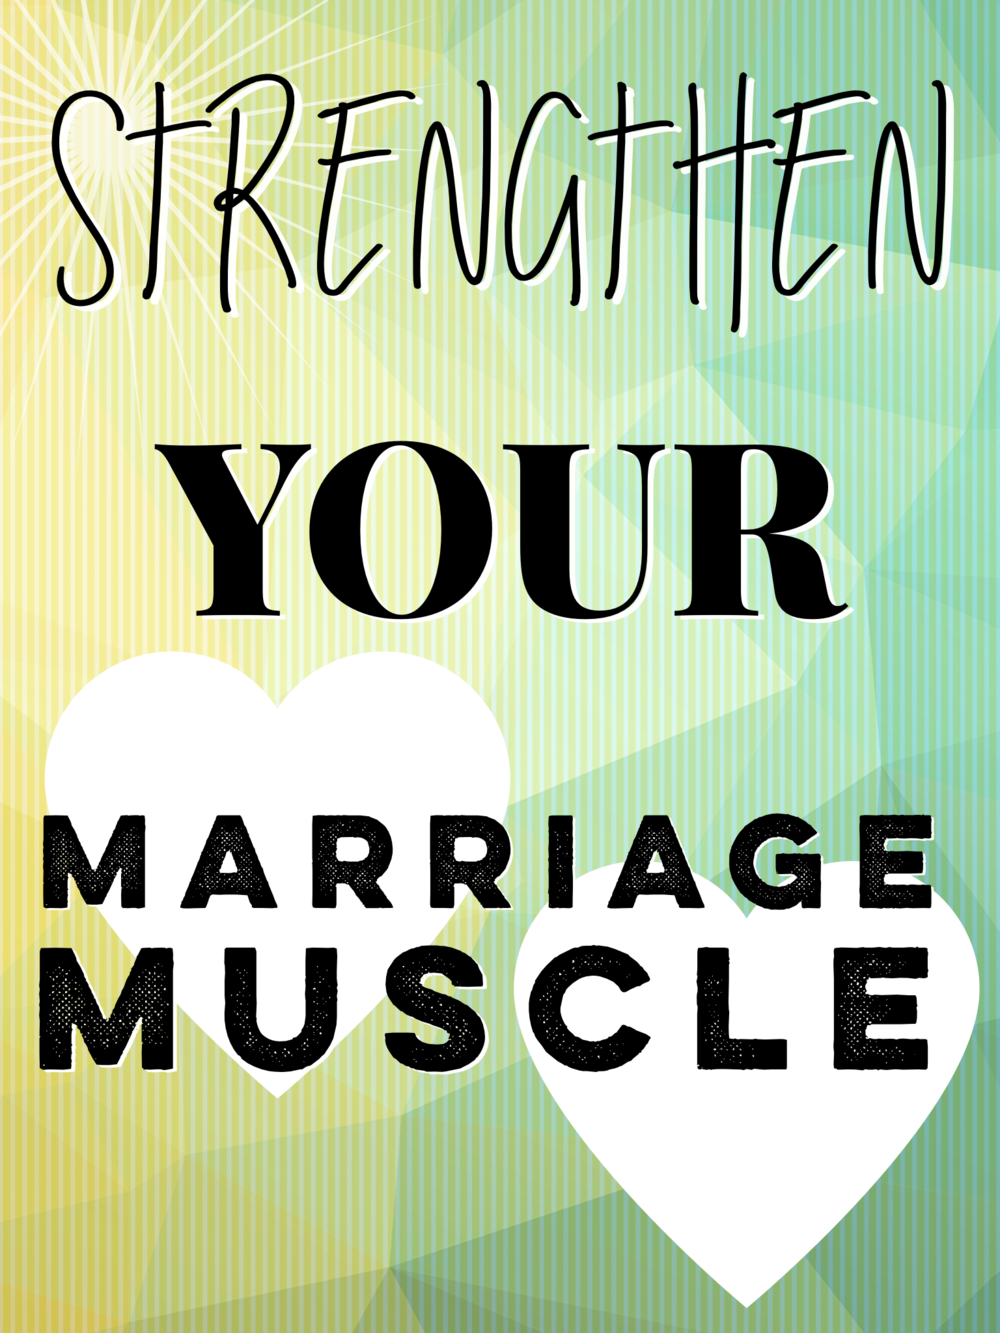 NEW BOOK COMING SOON... - Strengthen your marriage muscle is the most recent book project from Matt Delarosby. After being married for 17 years both Matt and his wife Pamela have learned a few things. Being young and married wasn't easy. They had to learn how to build muscles they never used before. Stay tuned for a powerful, personal and practical book on how you can strengthen your marriage muscle. Wether you are single desiring to be married, engaged, currently married or recently divorced. This book will be for you! Join the mailing list to be one of the first to hear updates.